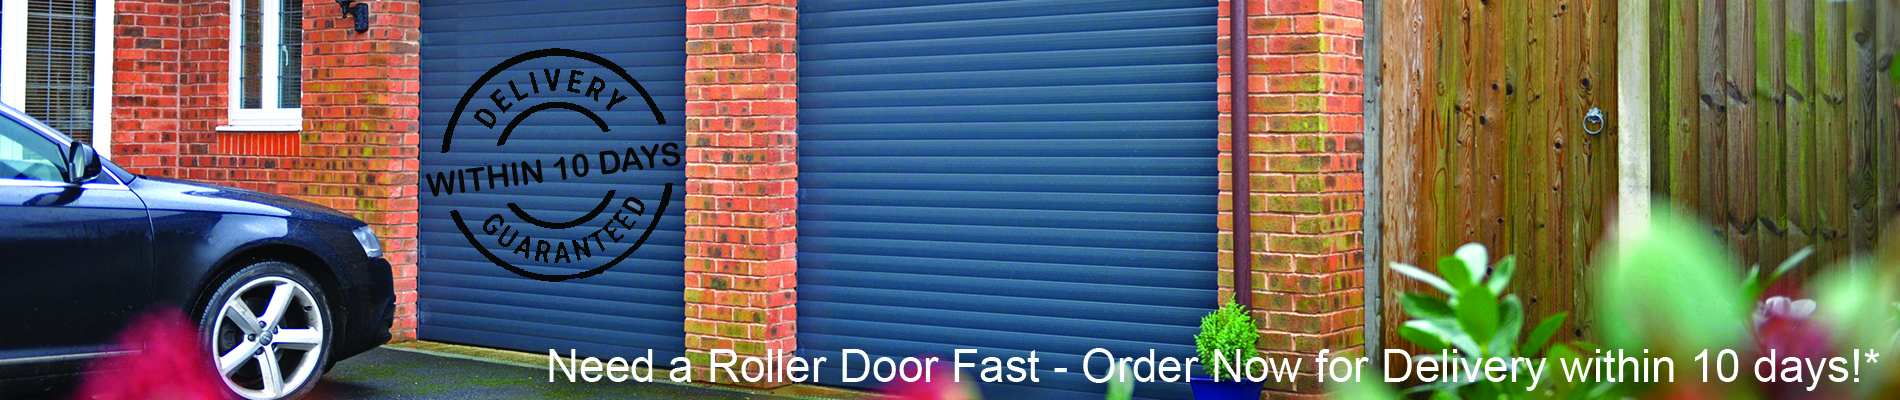 SeceuroGlide insulated roller door fast delivery